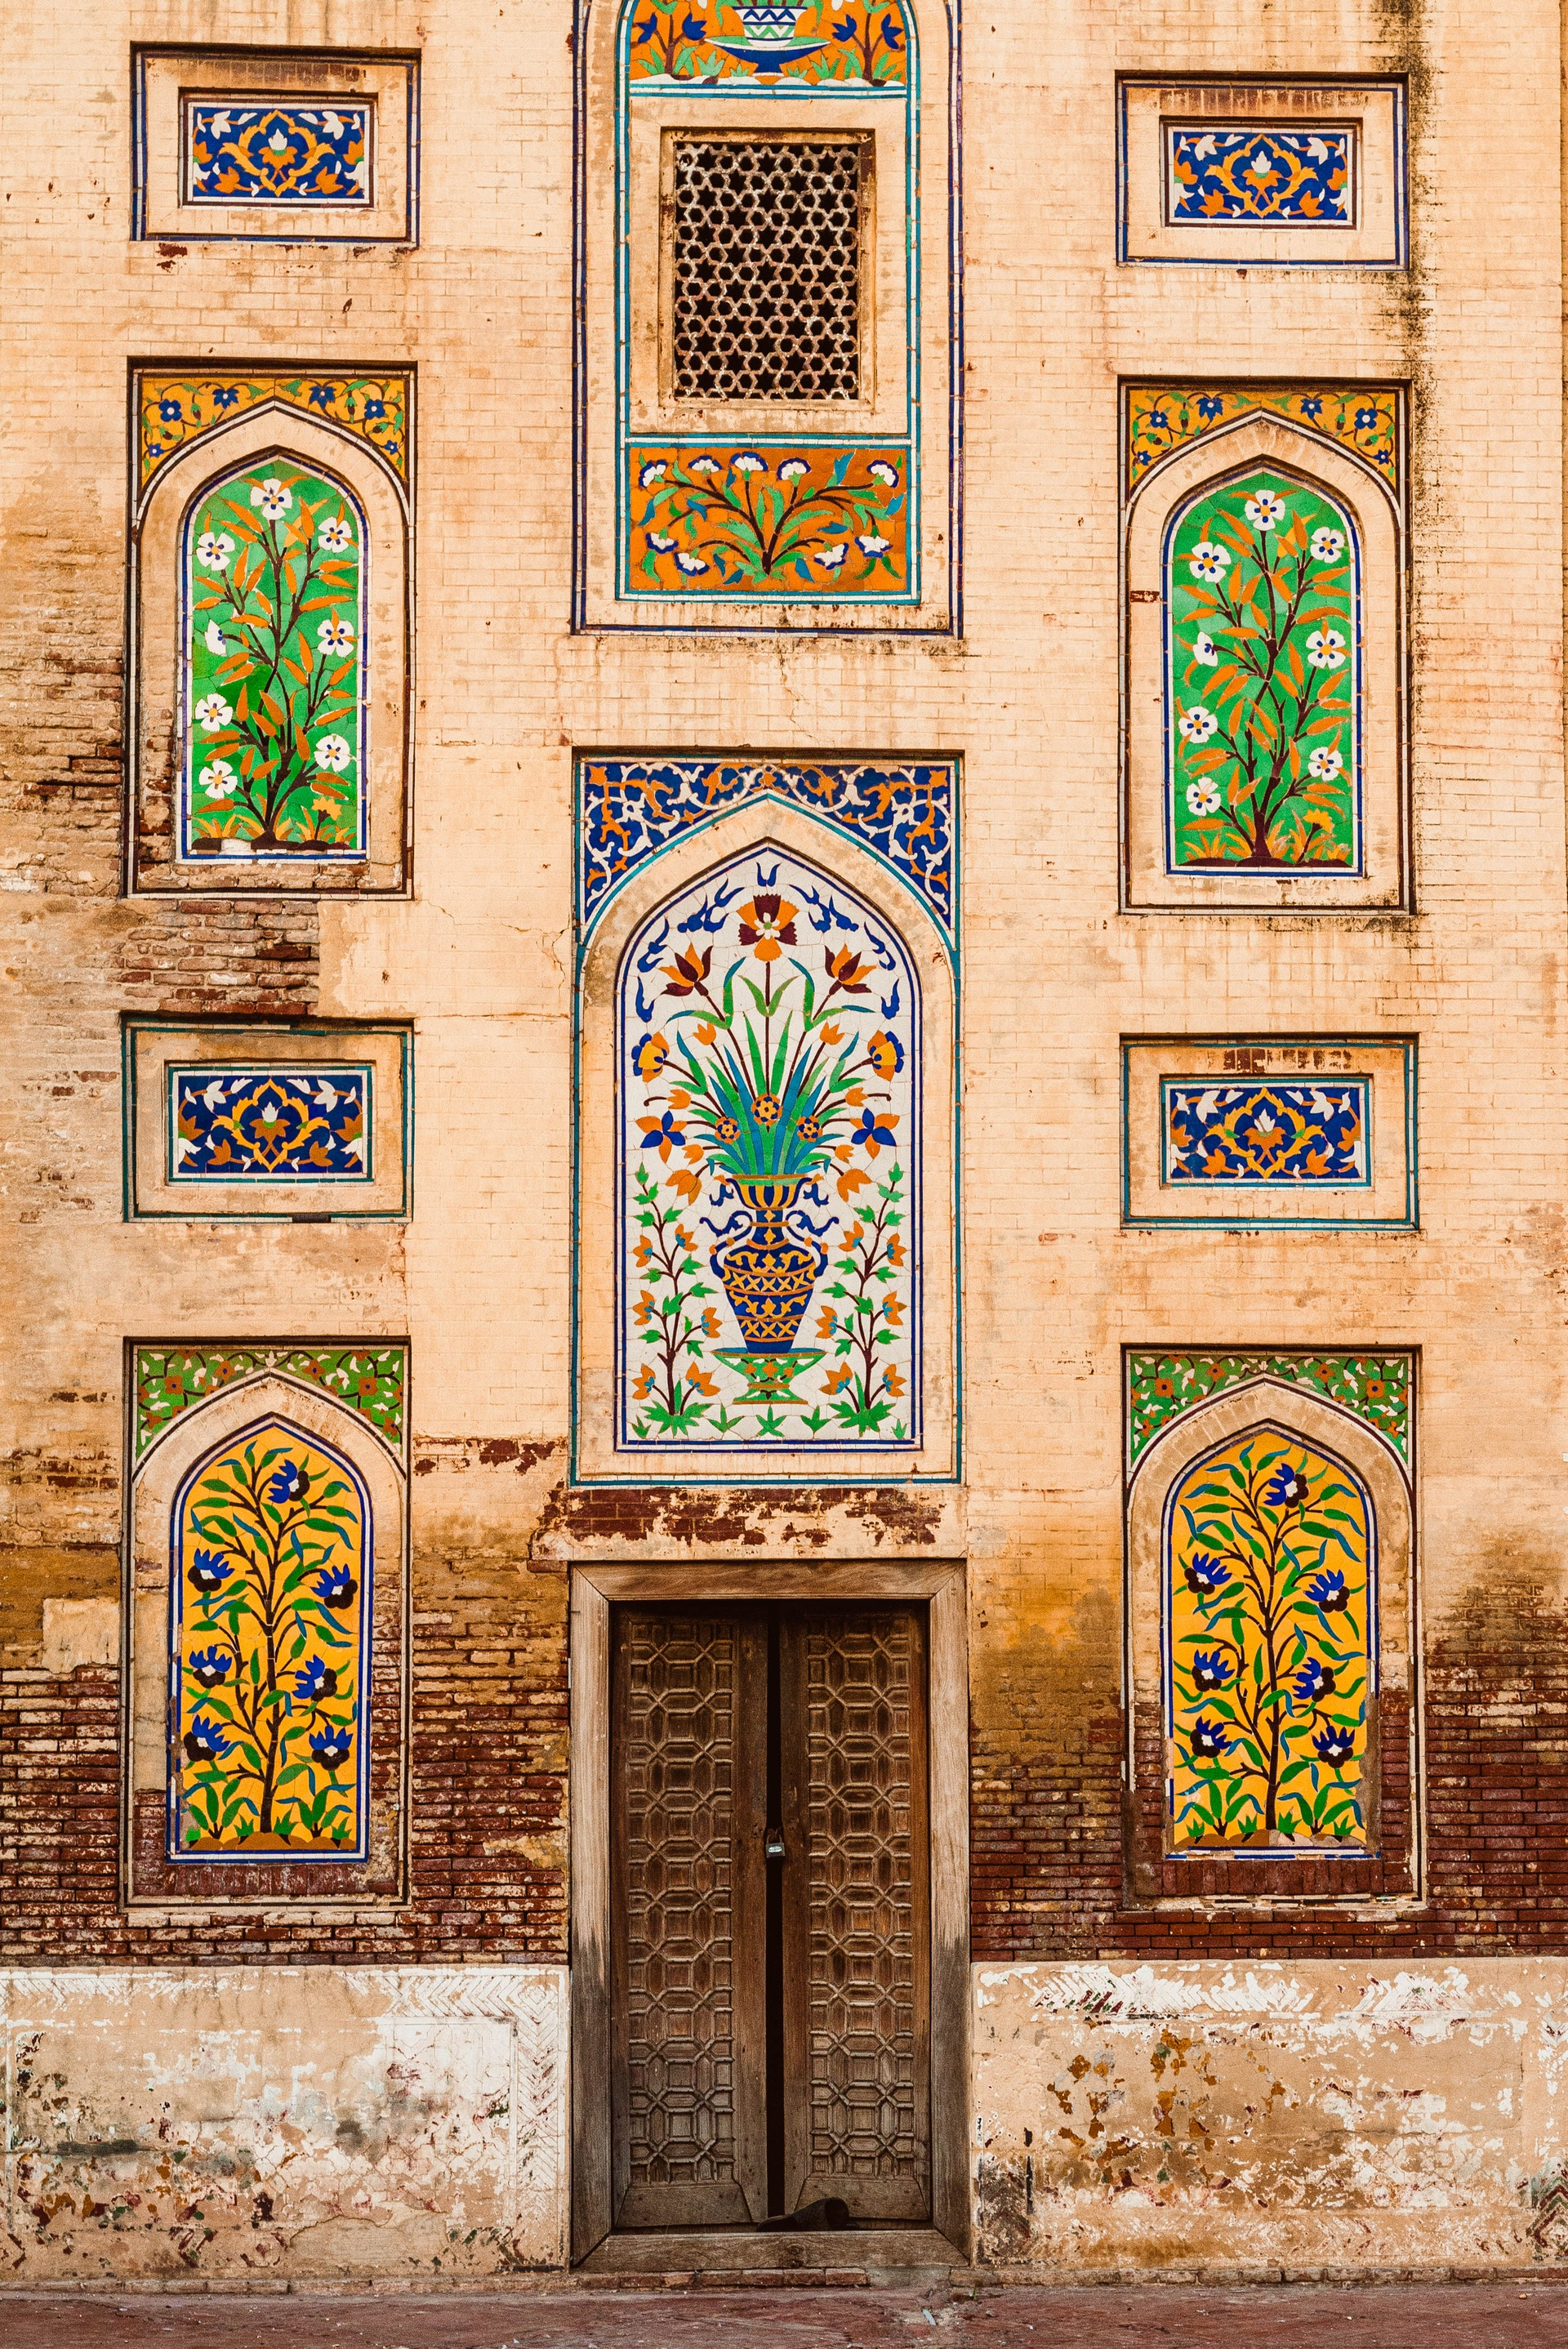 artistic-frontage-of-a-building-2884867